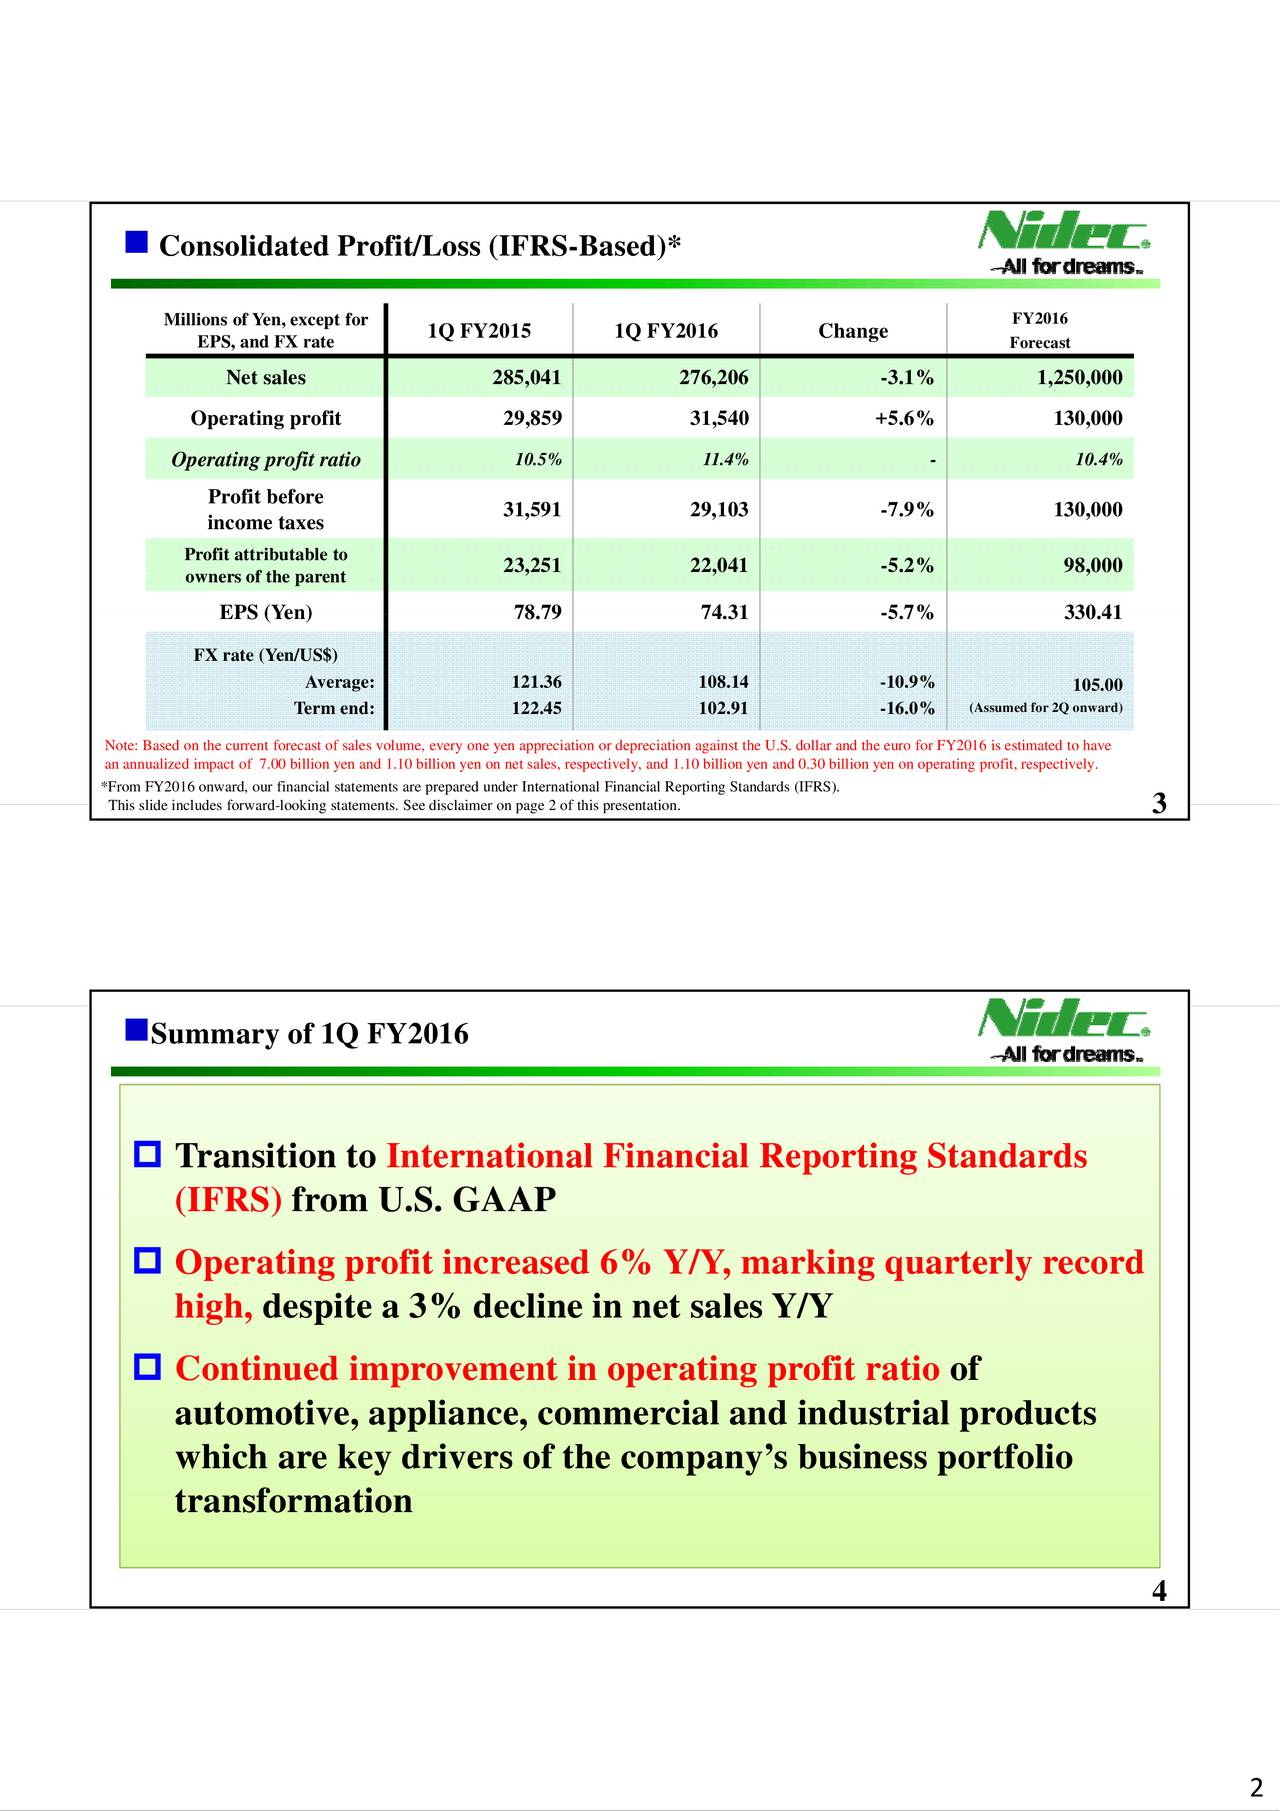 Millions of Yen, excep1Q FY2015 1Q FY2016 Change FY2016 EPS, and FX rate Forecast Net sales 285,041 276,206 -3.1% 1,250,000 Operating profit 29,859 31,540 +5.6% 130,000 10.5% 11.4% - 10.4% Operating profit ratio Profit before income taxes 31,591 29,103 -7.9% 130,000 Profit attributable to owners of the parent 23,251 22,041 -5.2% 98,000 EPS(Yen) 7879 7431 -5%%7 33041 FX rate (Yen/US$) Average: 121.36 108.14 -10.9% 105.00 Term end: 122.45 102.91 -16.0% (Assumed for 2Q onward) Note: Based on the current forecast of sales volume, every one yen appreciation or depreciation against the U.S. dollar and the euro for FY2016 is estimated to have *From FY2016 onward, our financial statements are prepared under International Financial Reporting Standards (IFRS)..30 billion yen on operating profit, respectively. This slide includes forward-looking statements. See disclaimer on page 2 of this pres3ntation. Summary of 1Q FY2016 Transition to International Financial Reporting Standards (IFRRSS)) from U U.SS. GAAAAP P Operating profit increased 6% Y/Y, marking quarterly record high, despite a 3% decline in net sales Y/Y Continued improvement in operating profit ratio of aiitodli dtiie, aippliance, commercial and industrial products which are key drivers of the companys business portfolio transformation 4 2